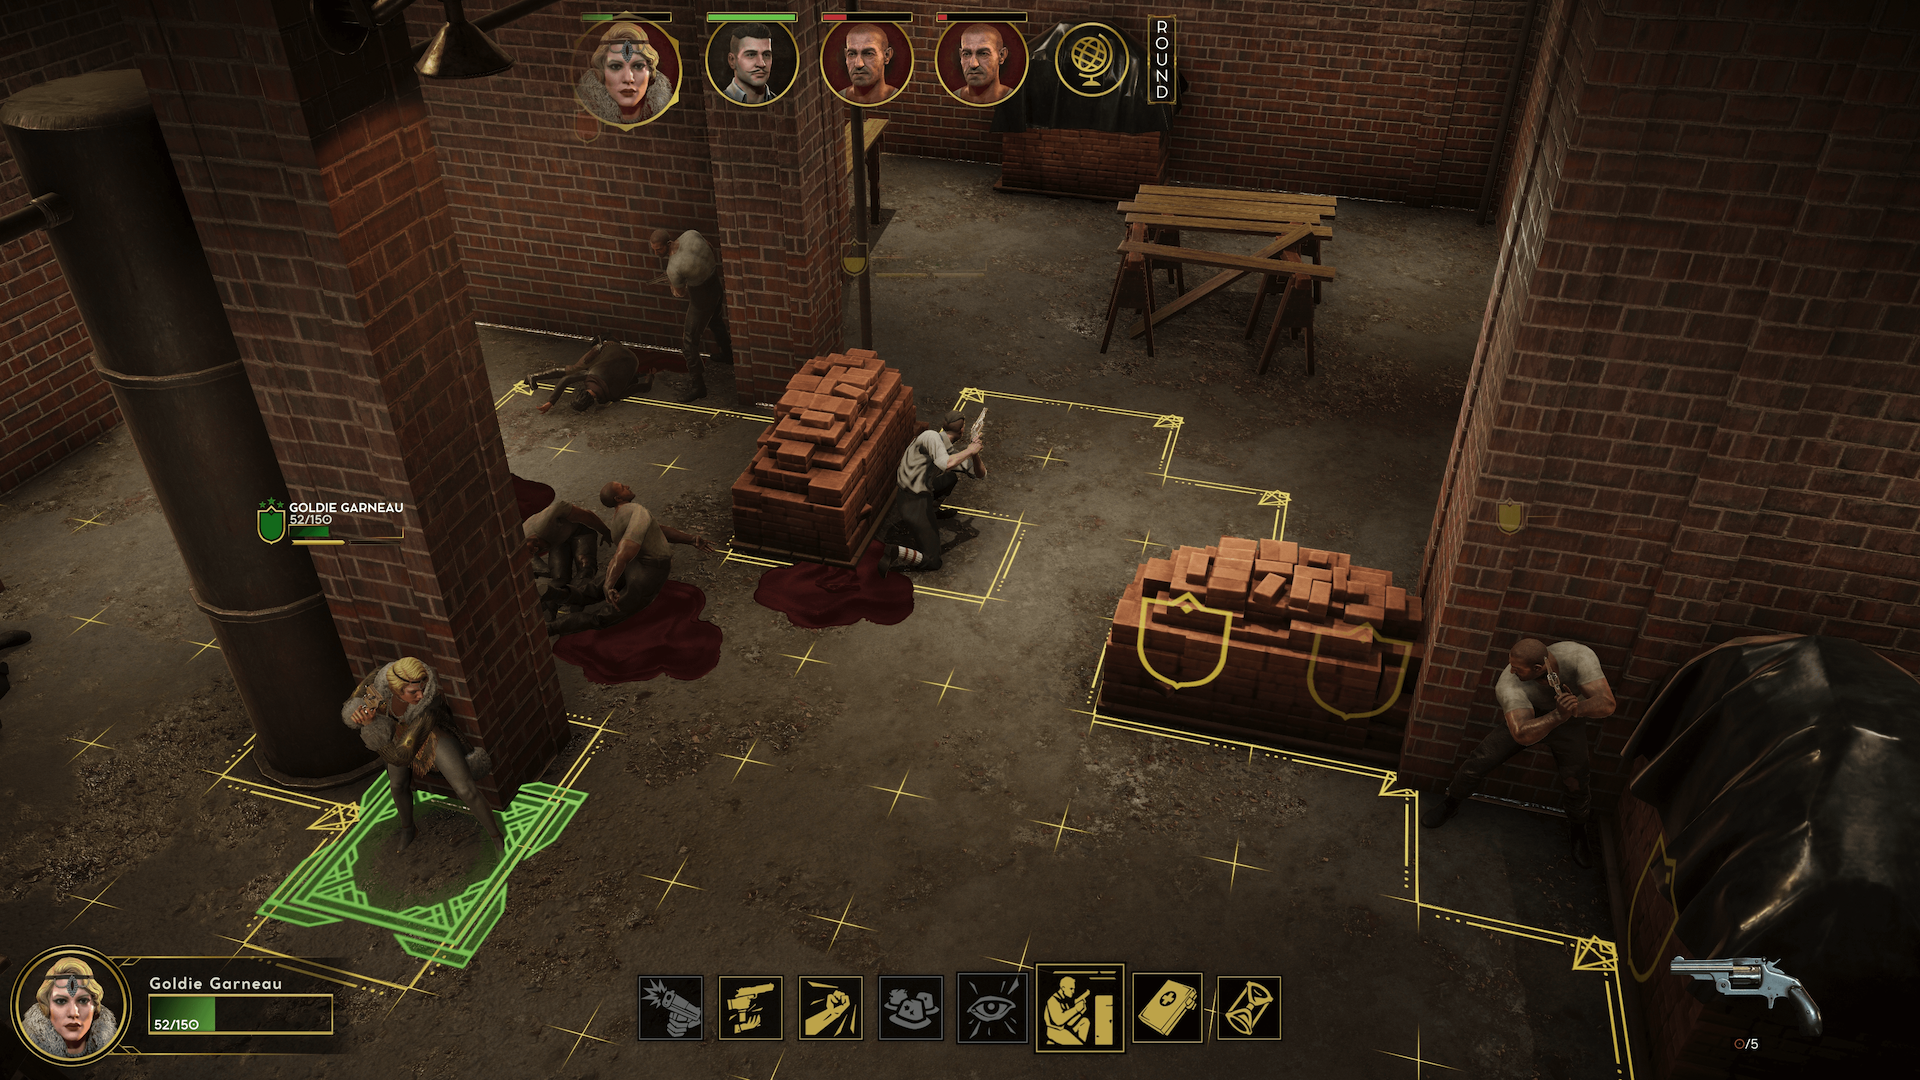 'Empire of Sin' Is Much More Than Just 'X-COM' With Tommy Guns